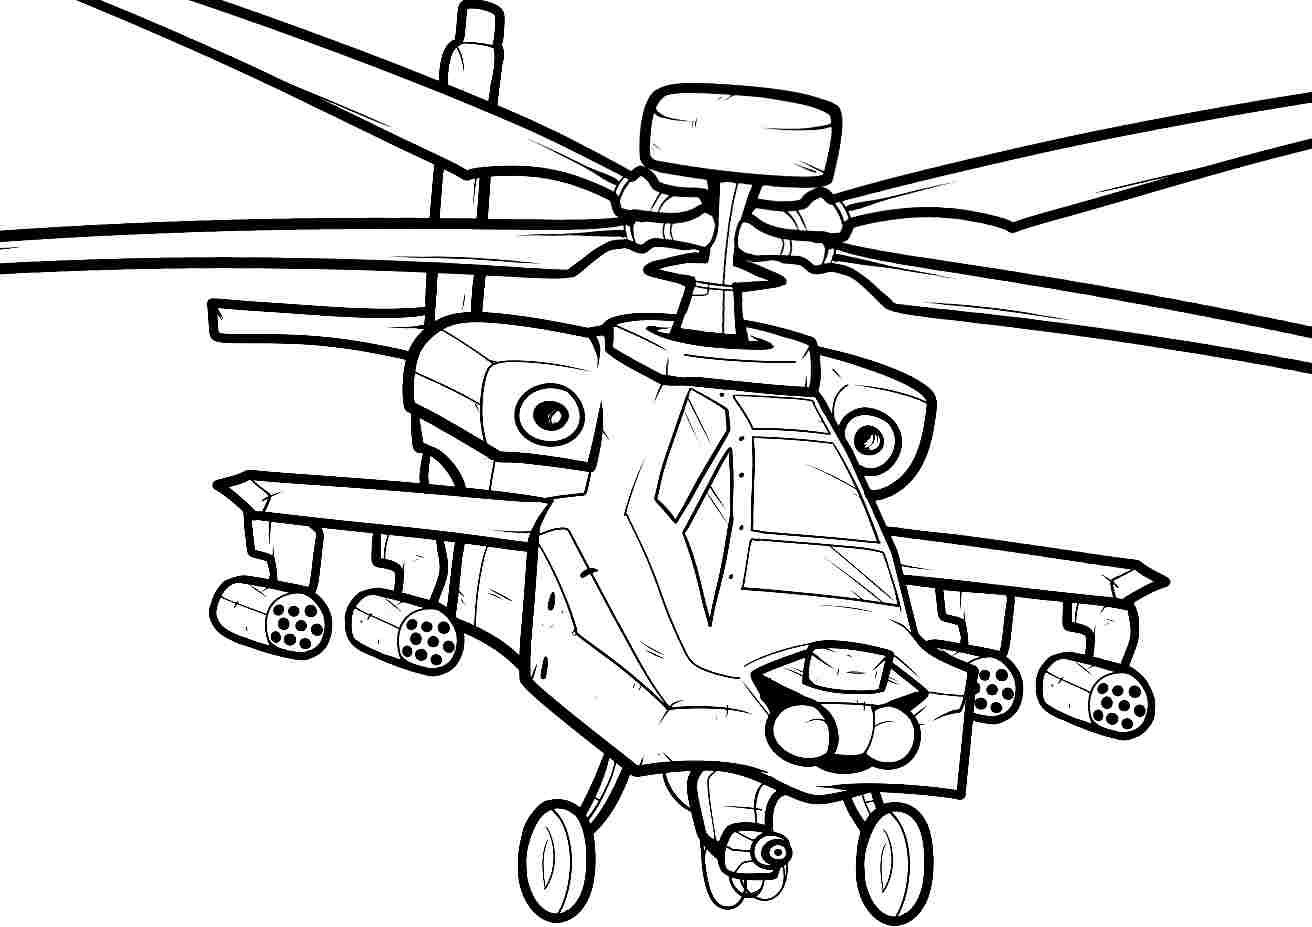 Rescue Helicopter Coloring Pages